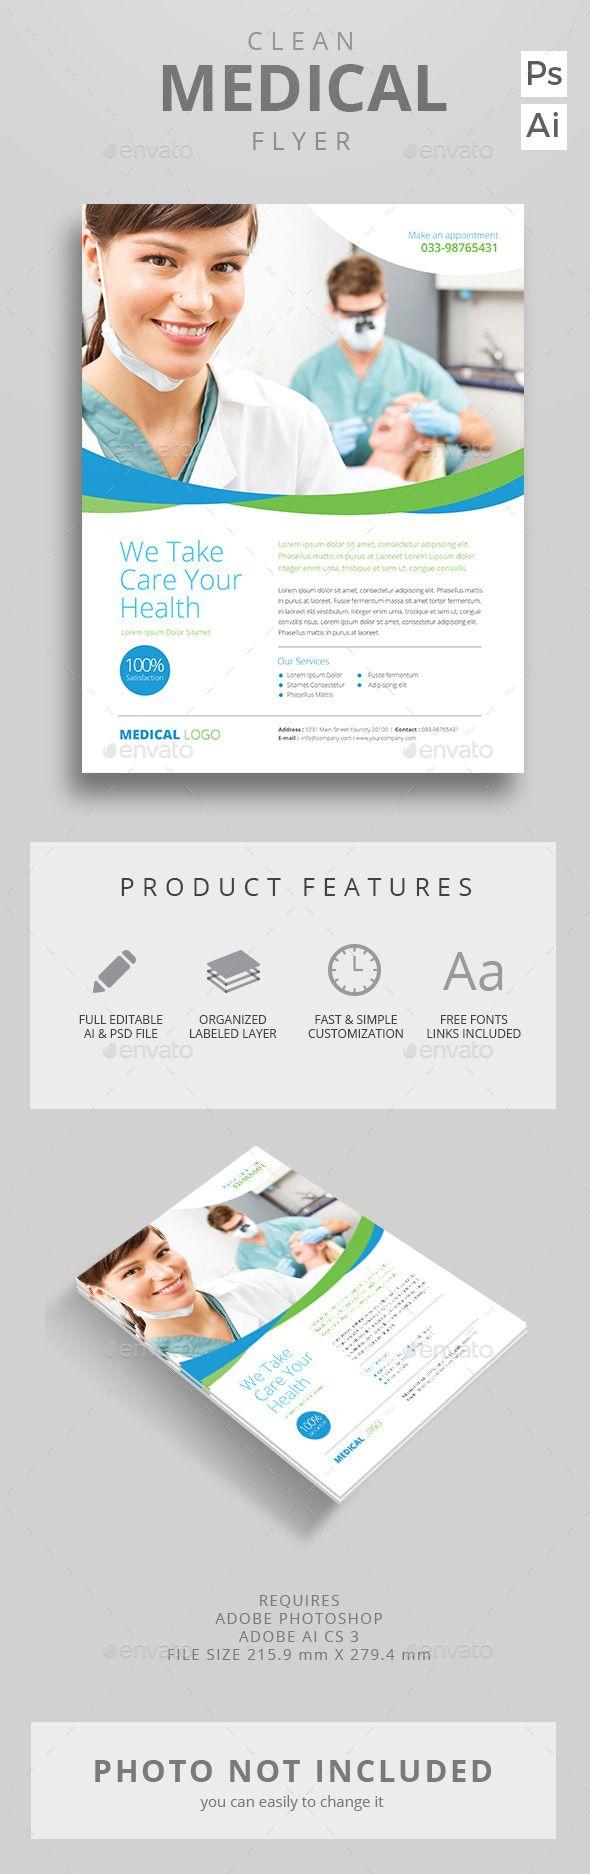 Clean Medical Flyer  Medical Flyer Template And Template